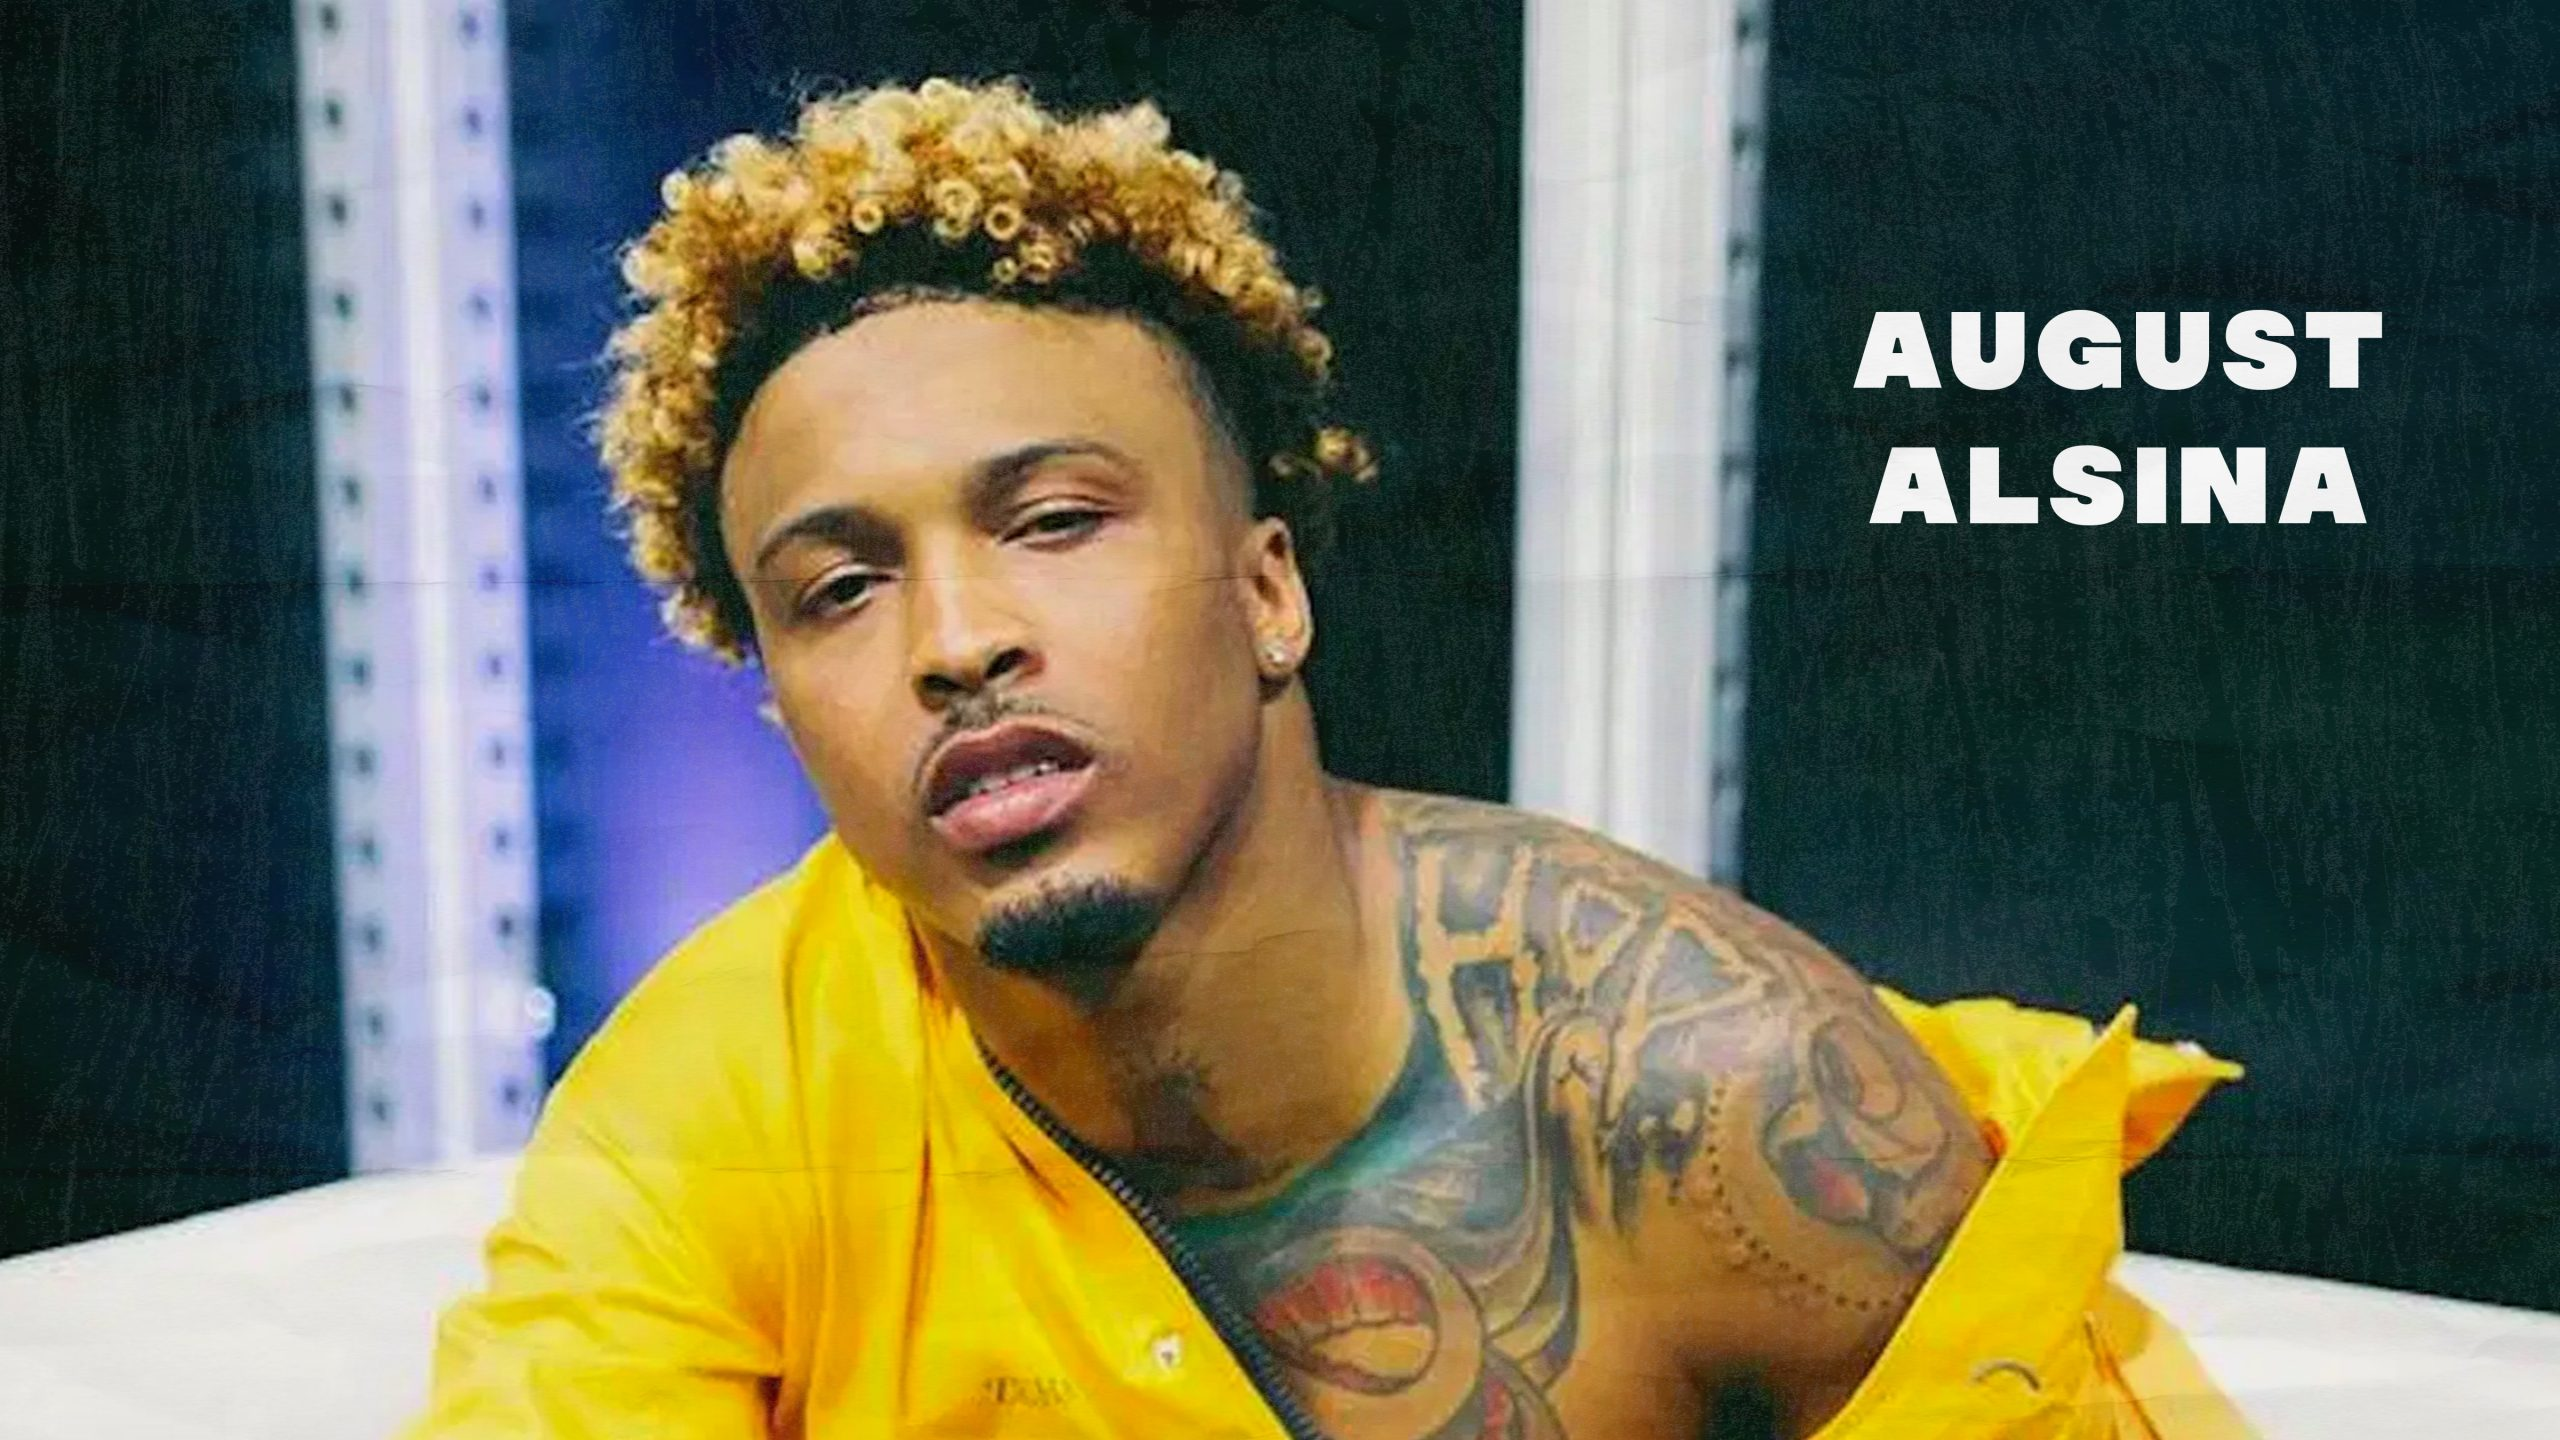 August Alsina: A New Orleans Legend in the Making